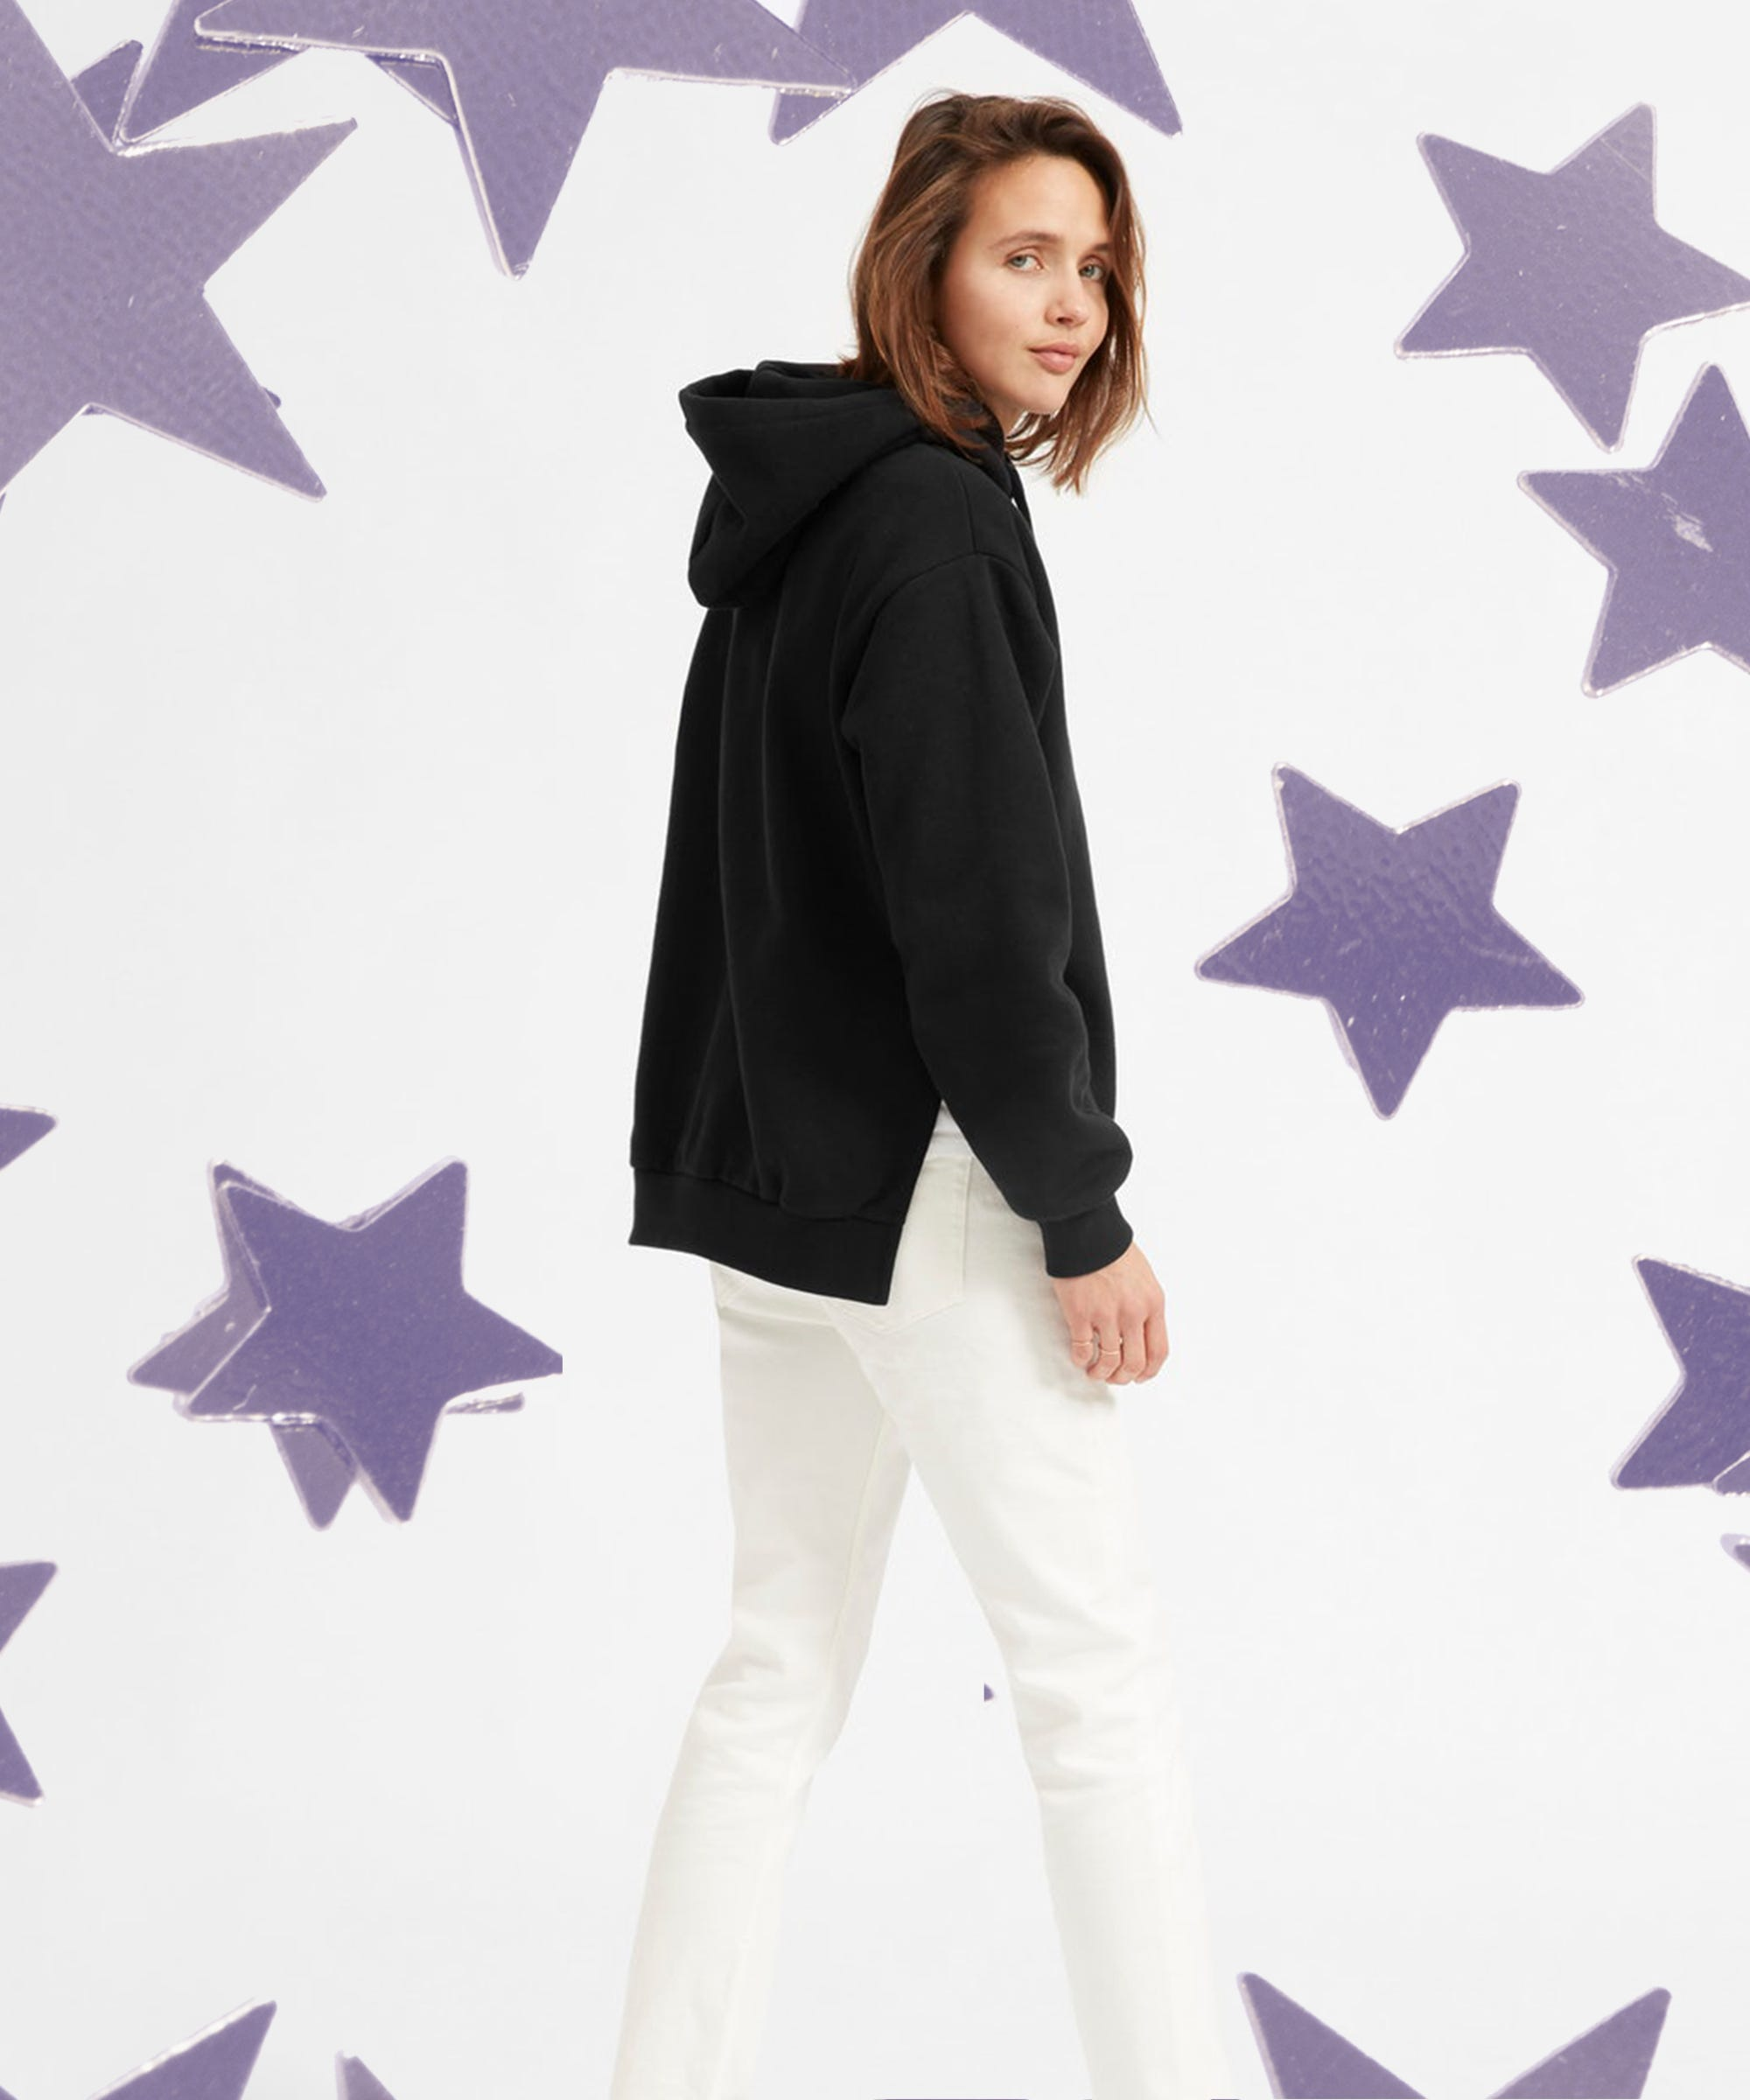 b9ae23b4a67a Poshmark Best Brands To Re-Sell Everlane Hunter Supreme